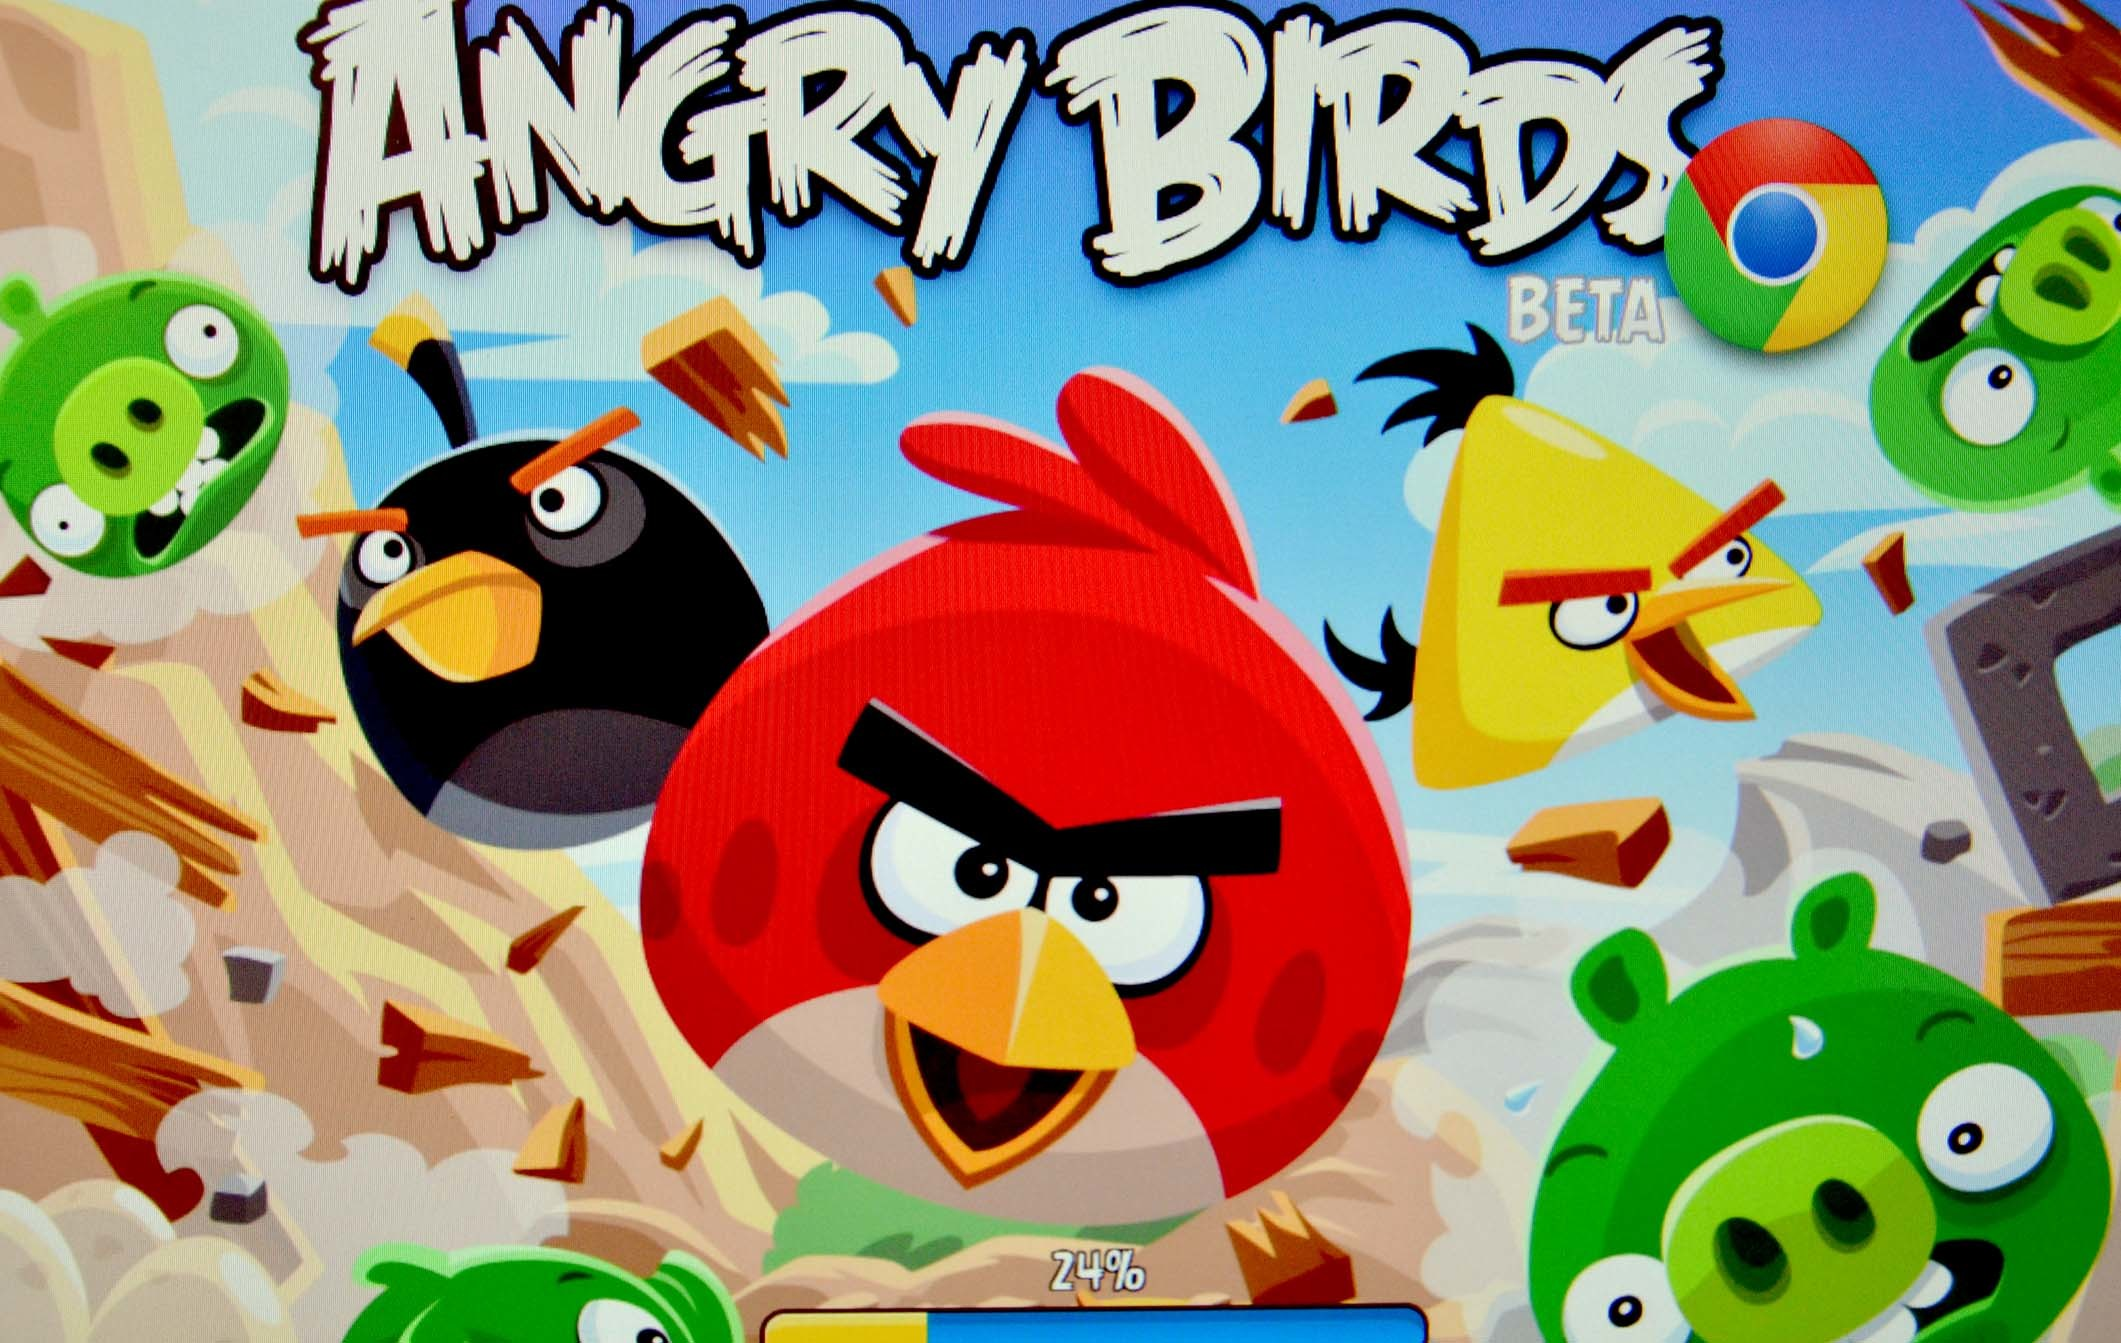 2121x1343 Angry birds